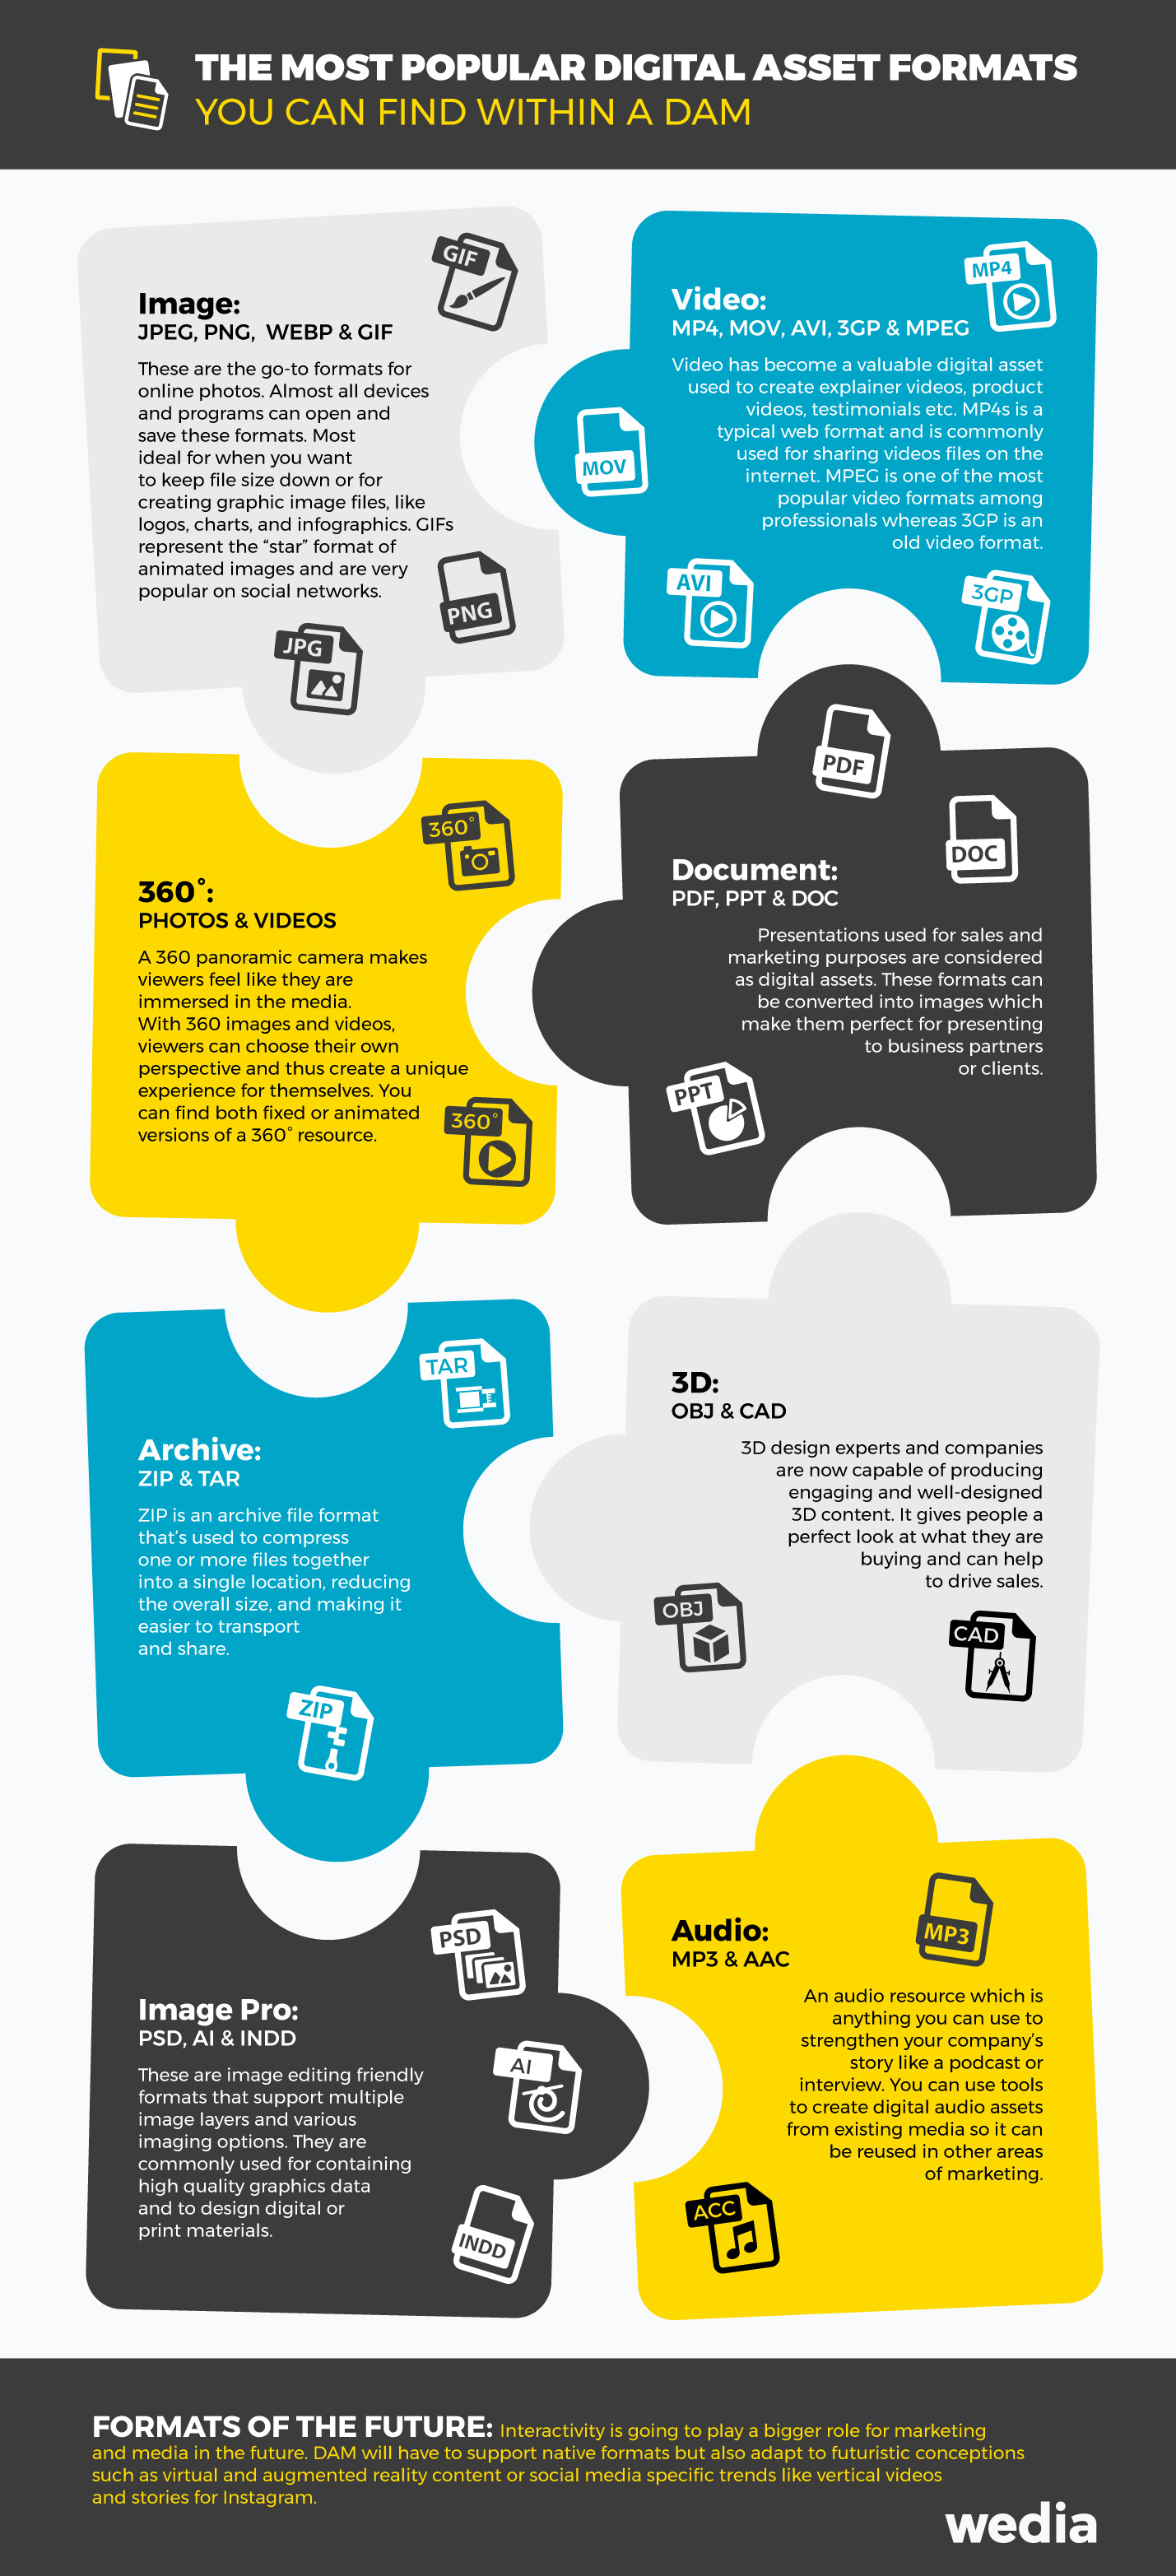 Infographic most common digital asset formats within a DAM